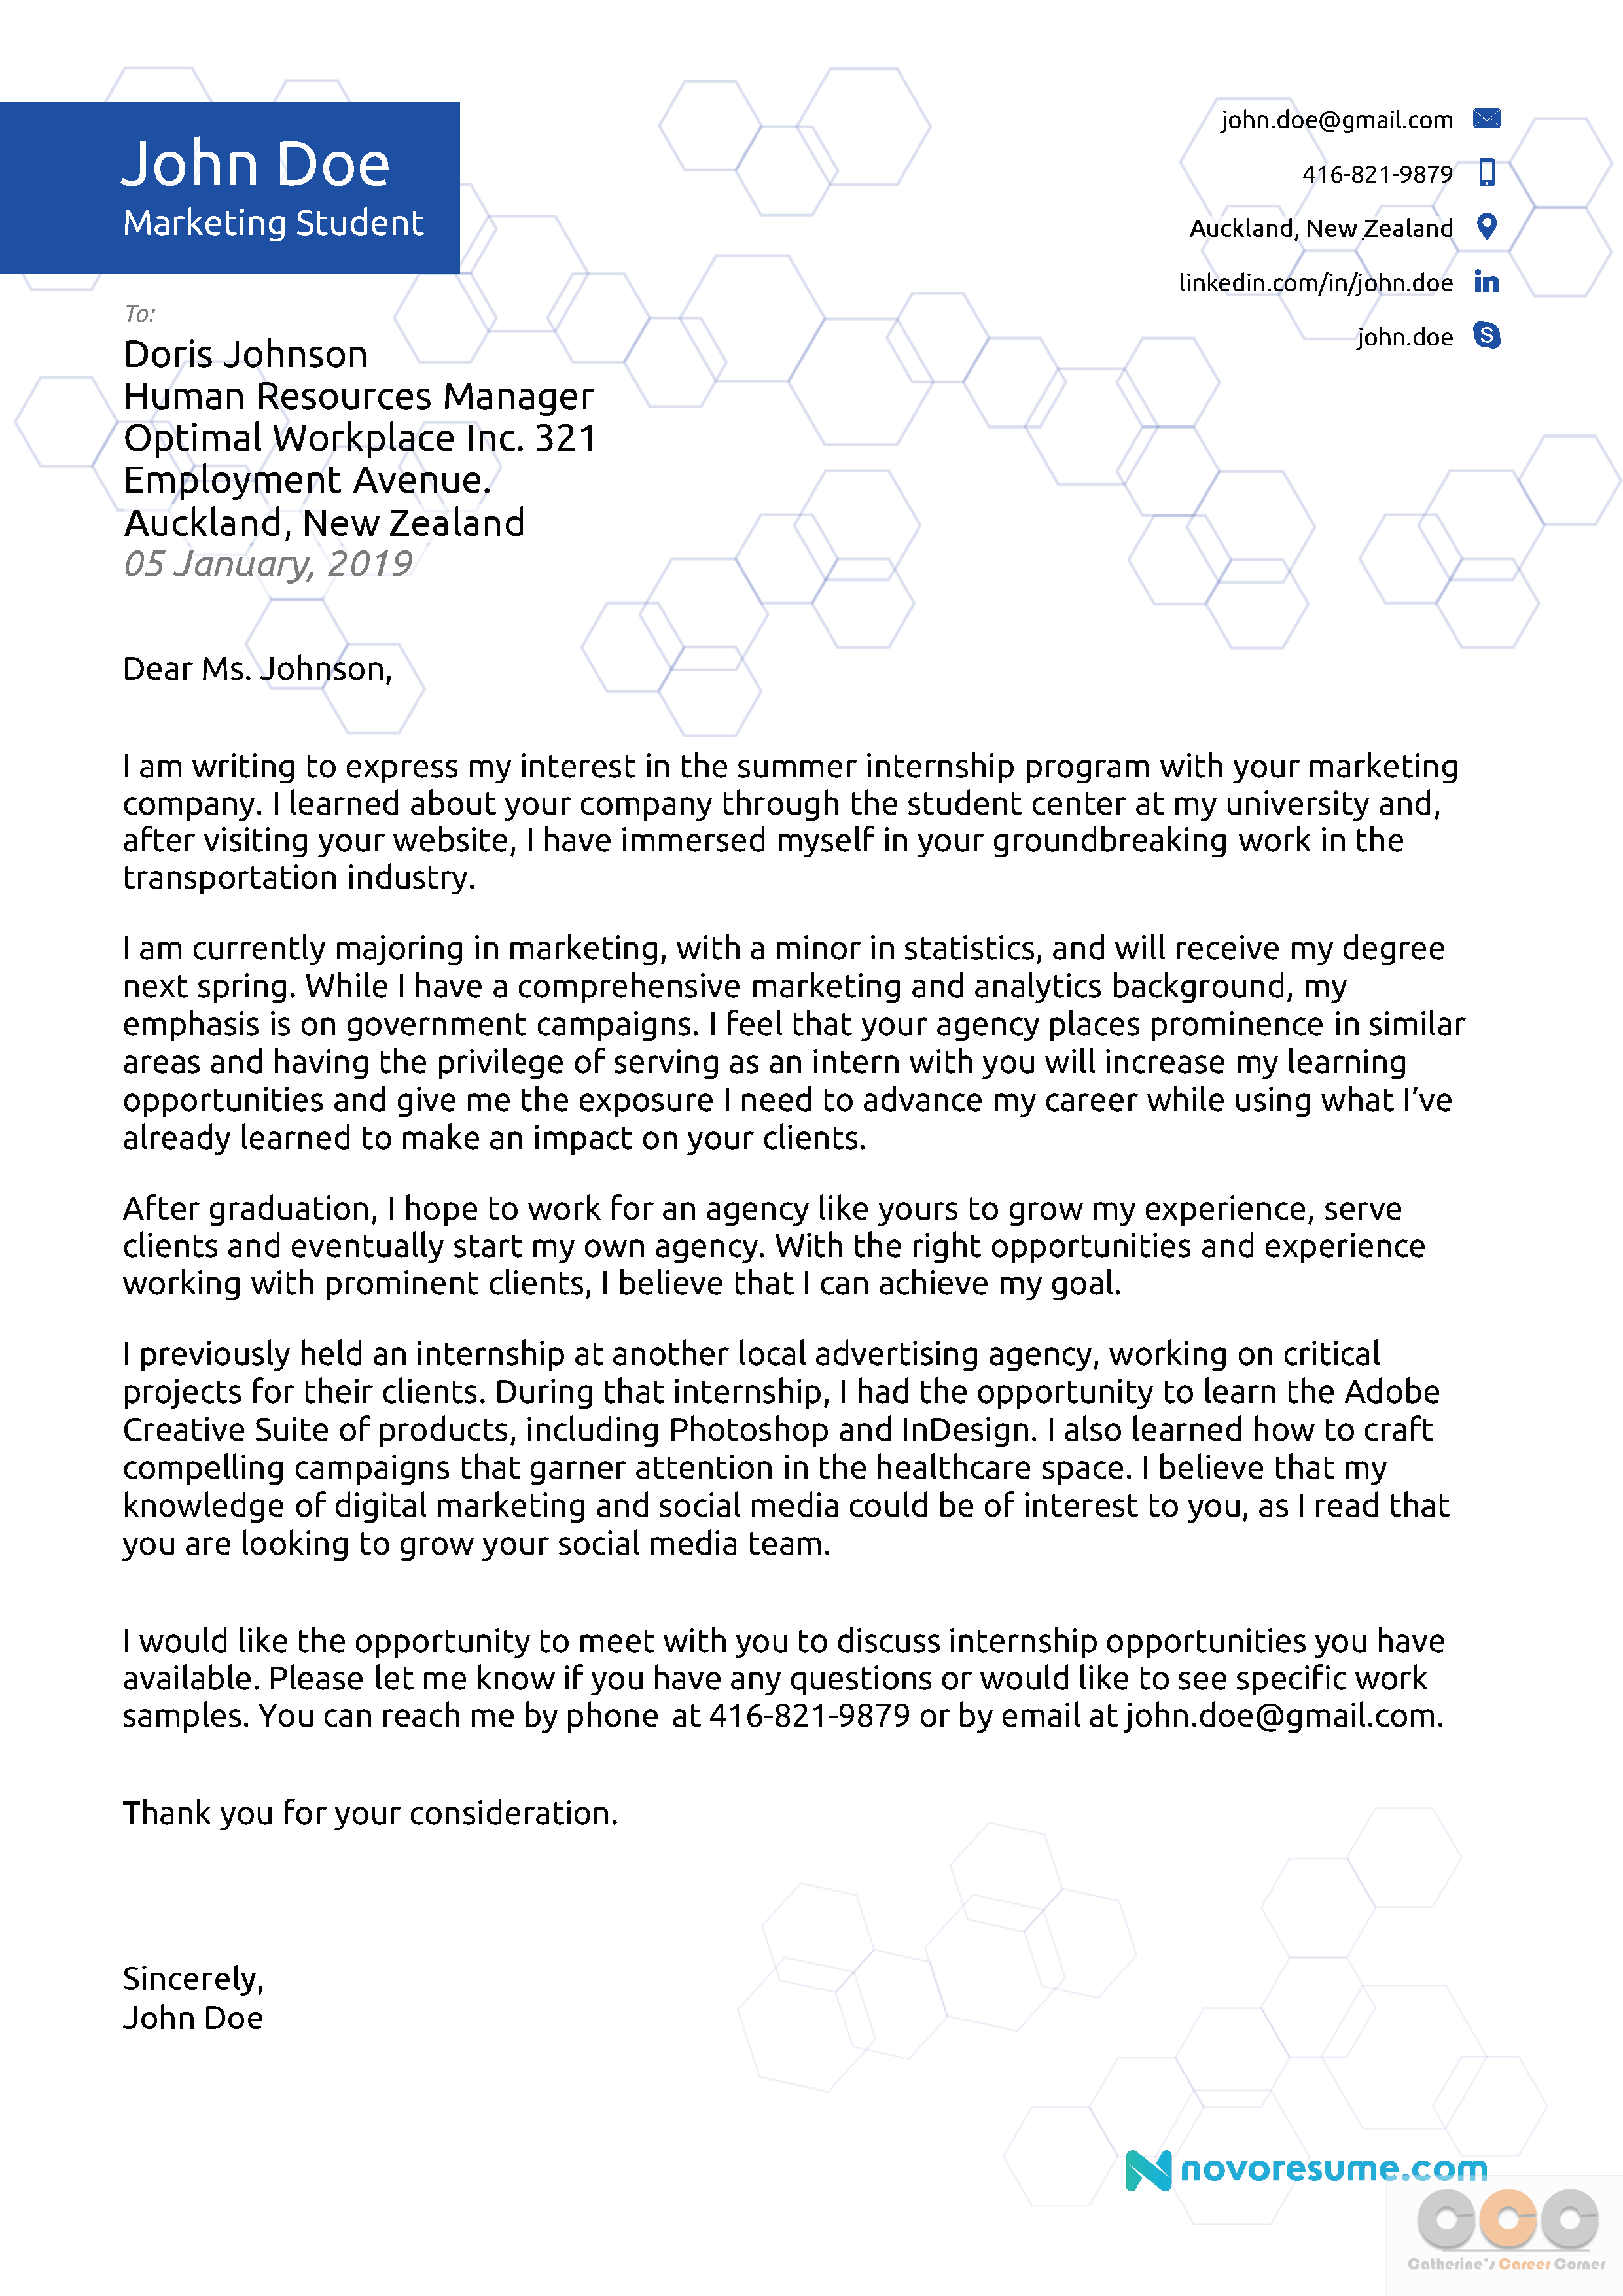 Sample Marketing Cover Letter from catherinescareercorner.com